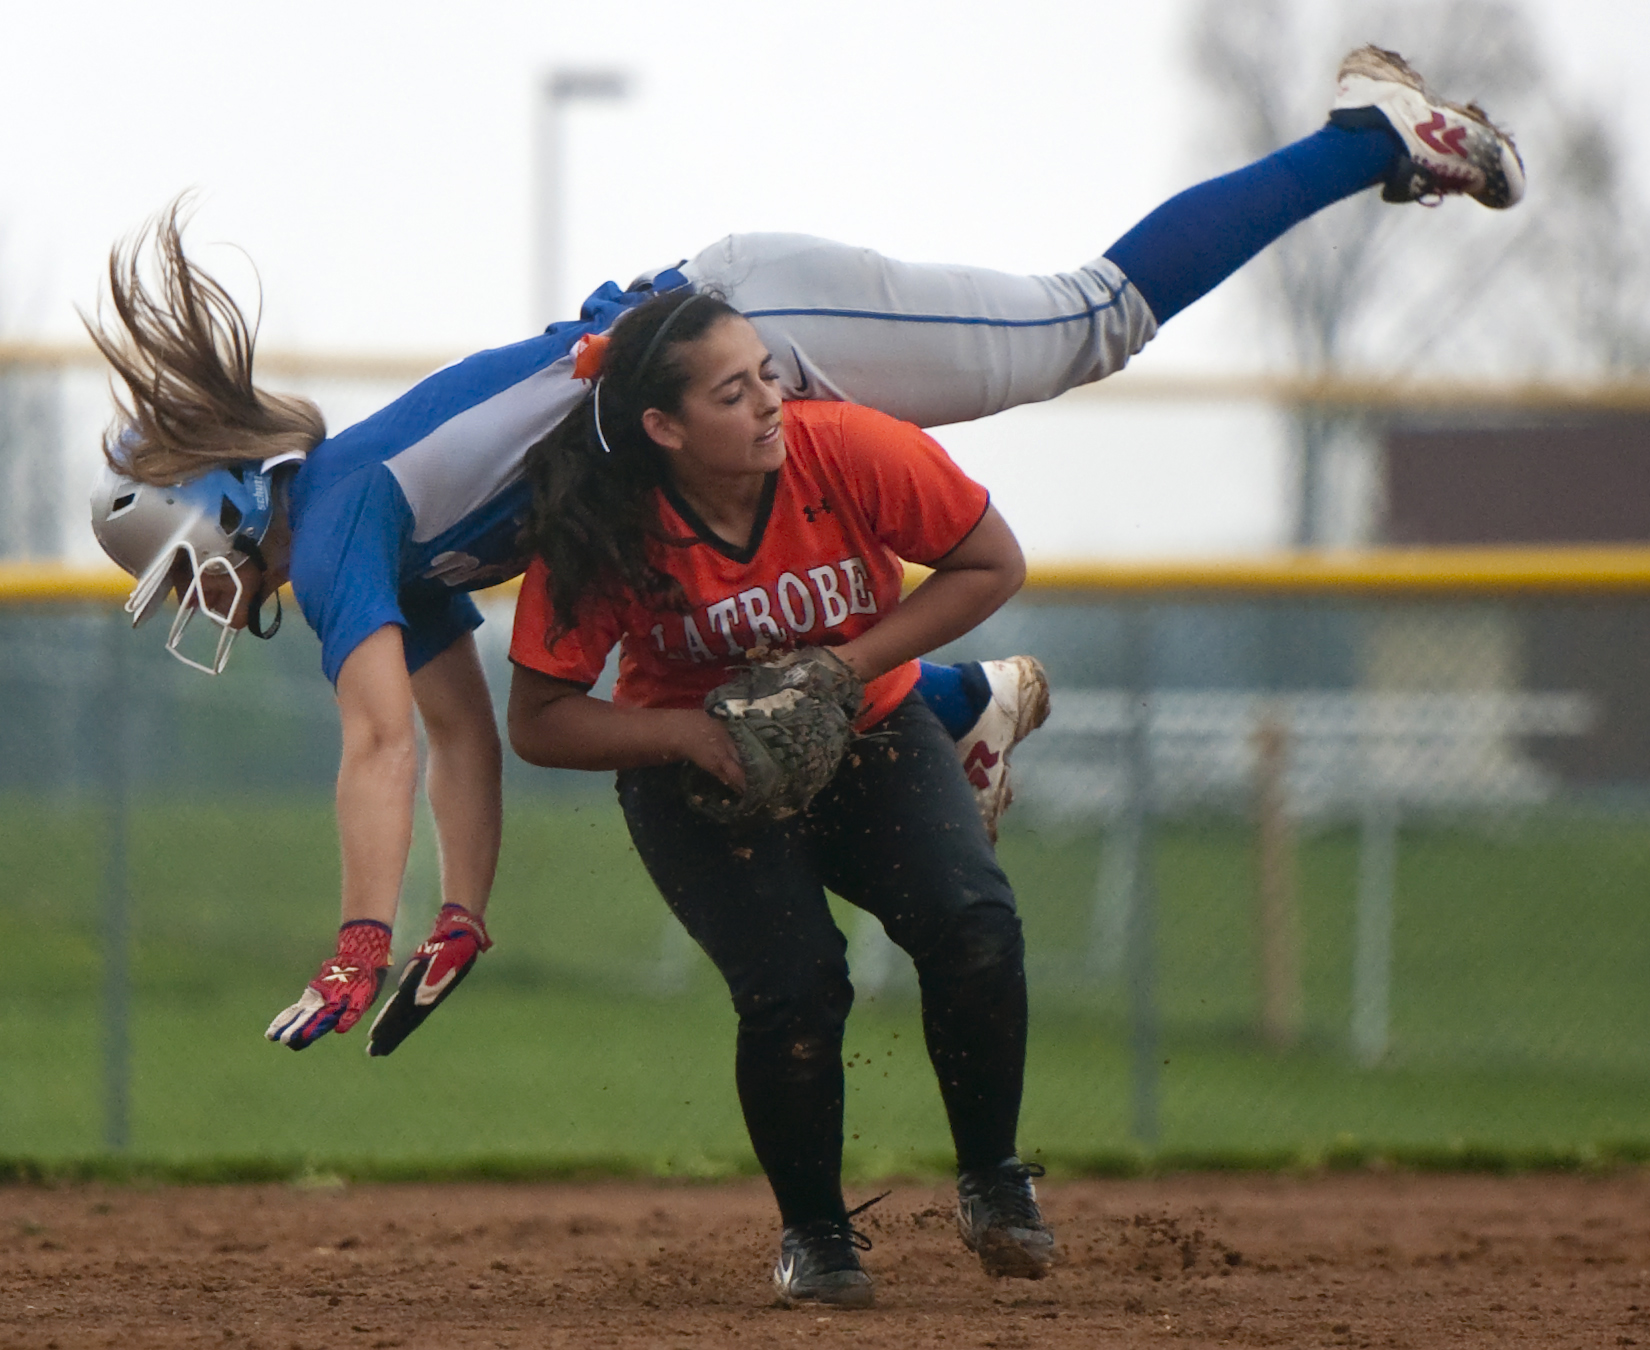 Taylor Hoffman collides with Latrobe's Karley Kovatch during a softball game at Hempfield on Friday, April 22, 2016. Hempfield won 7-1.